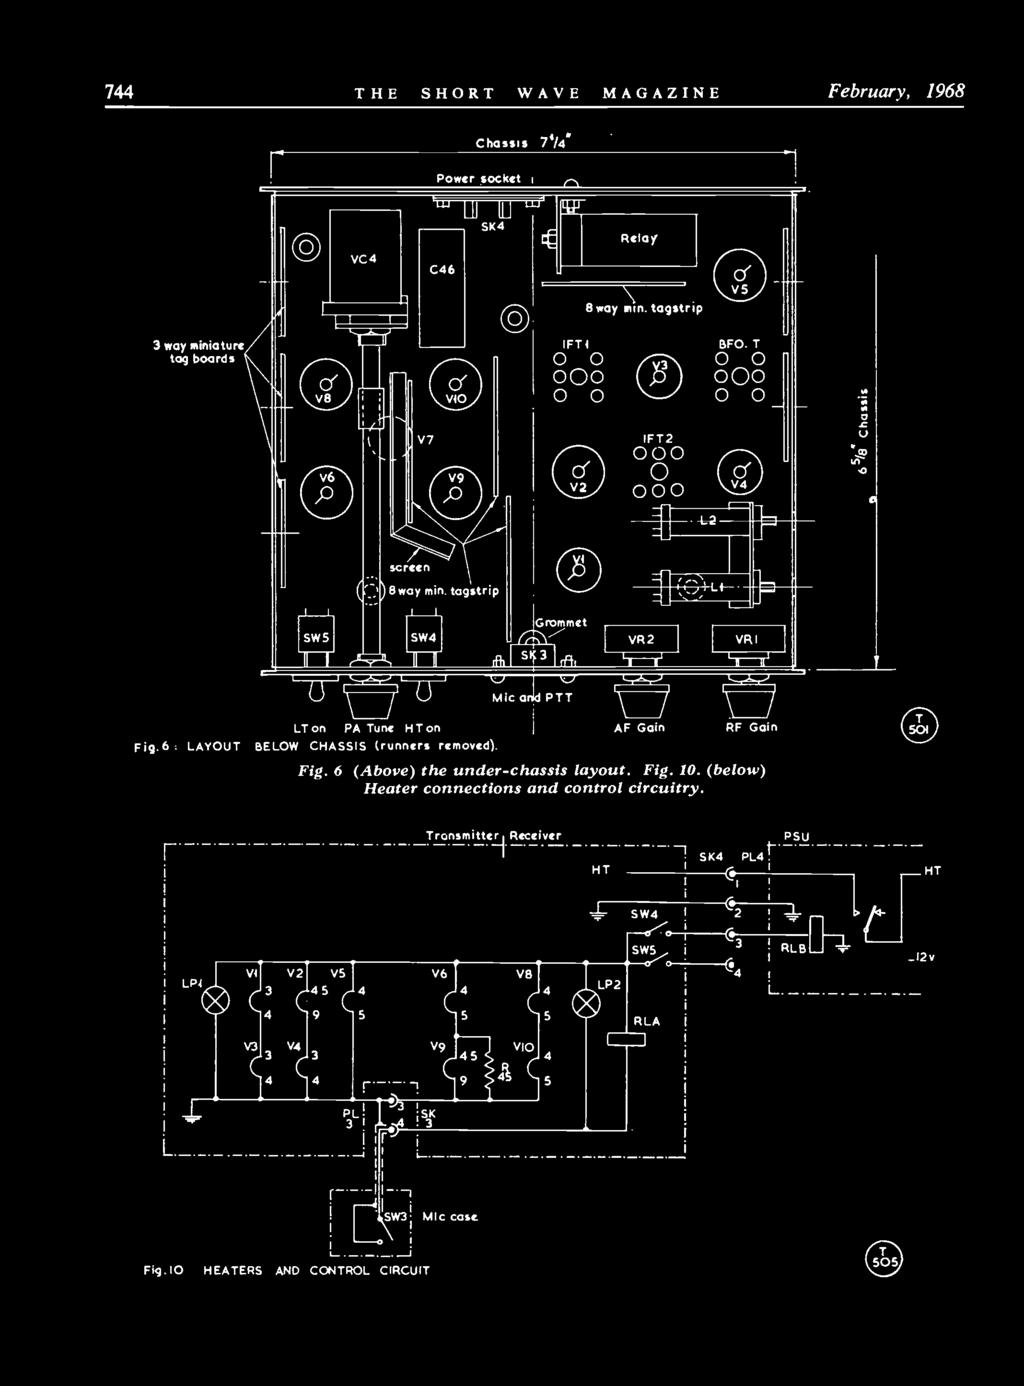 Kw Electronics Ltd No Price Increase On Any Equipment Kw2000a Windsor Rapid Caravan Wiring Diagram I 0 744 The Short Wave Magazine February 1968 Chassis 7t